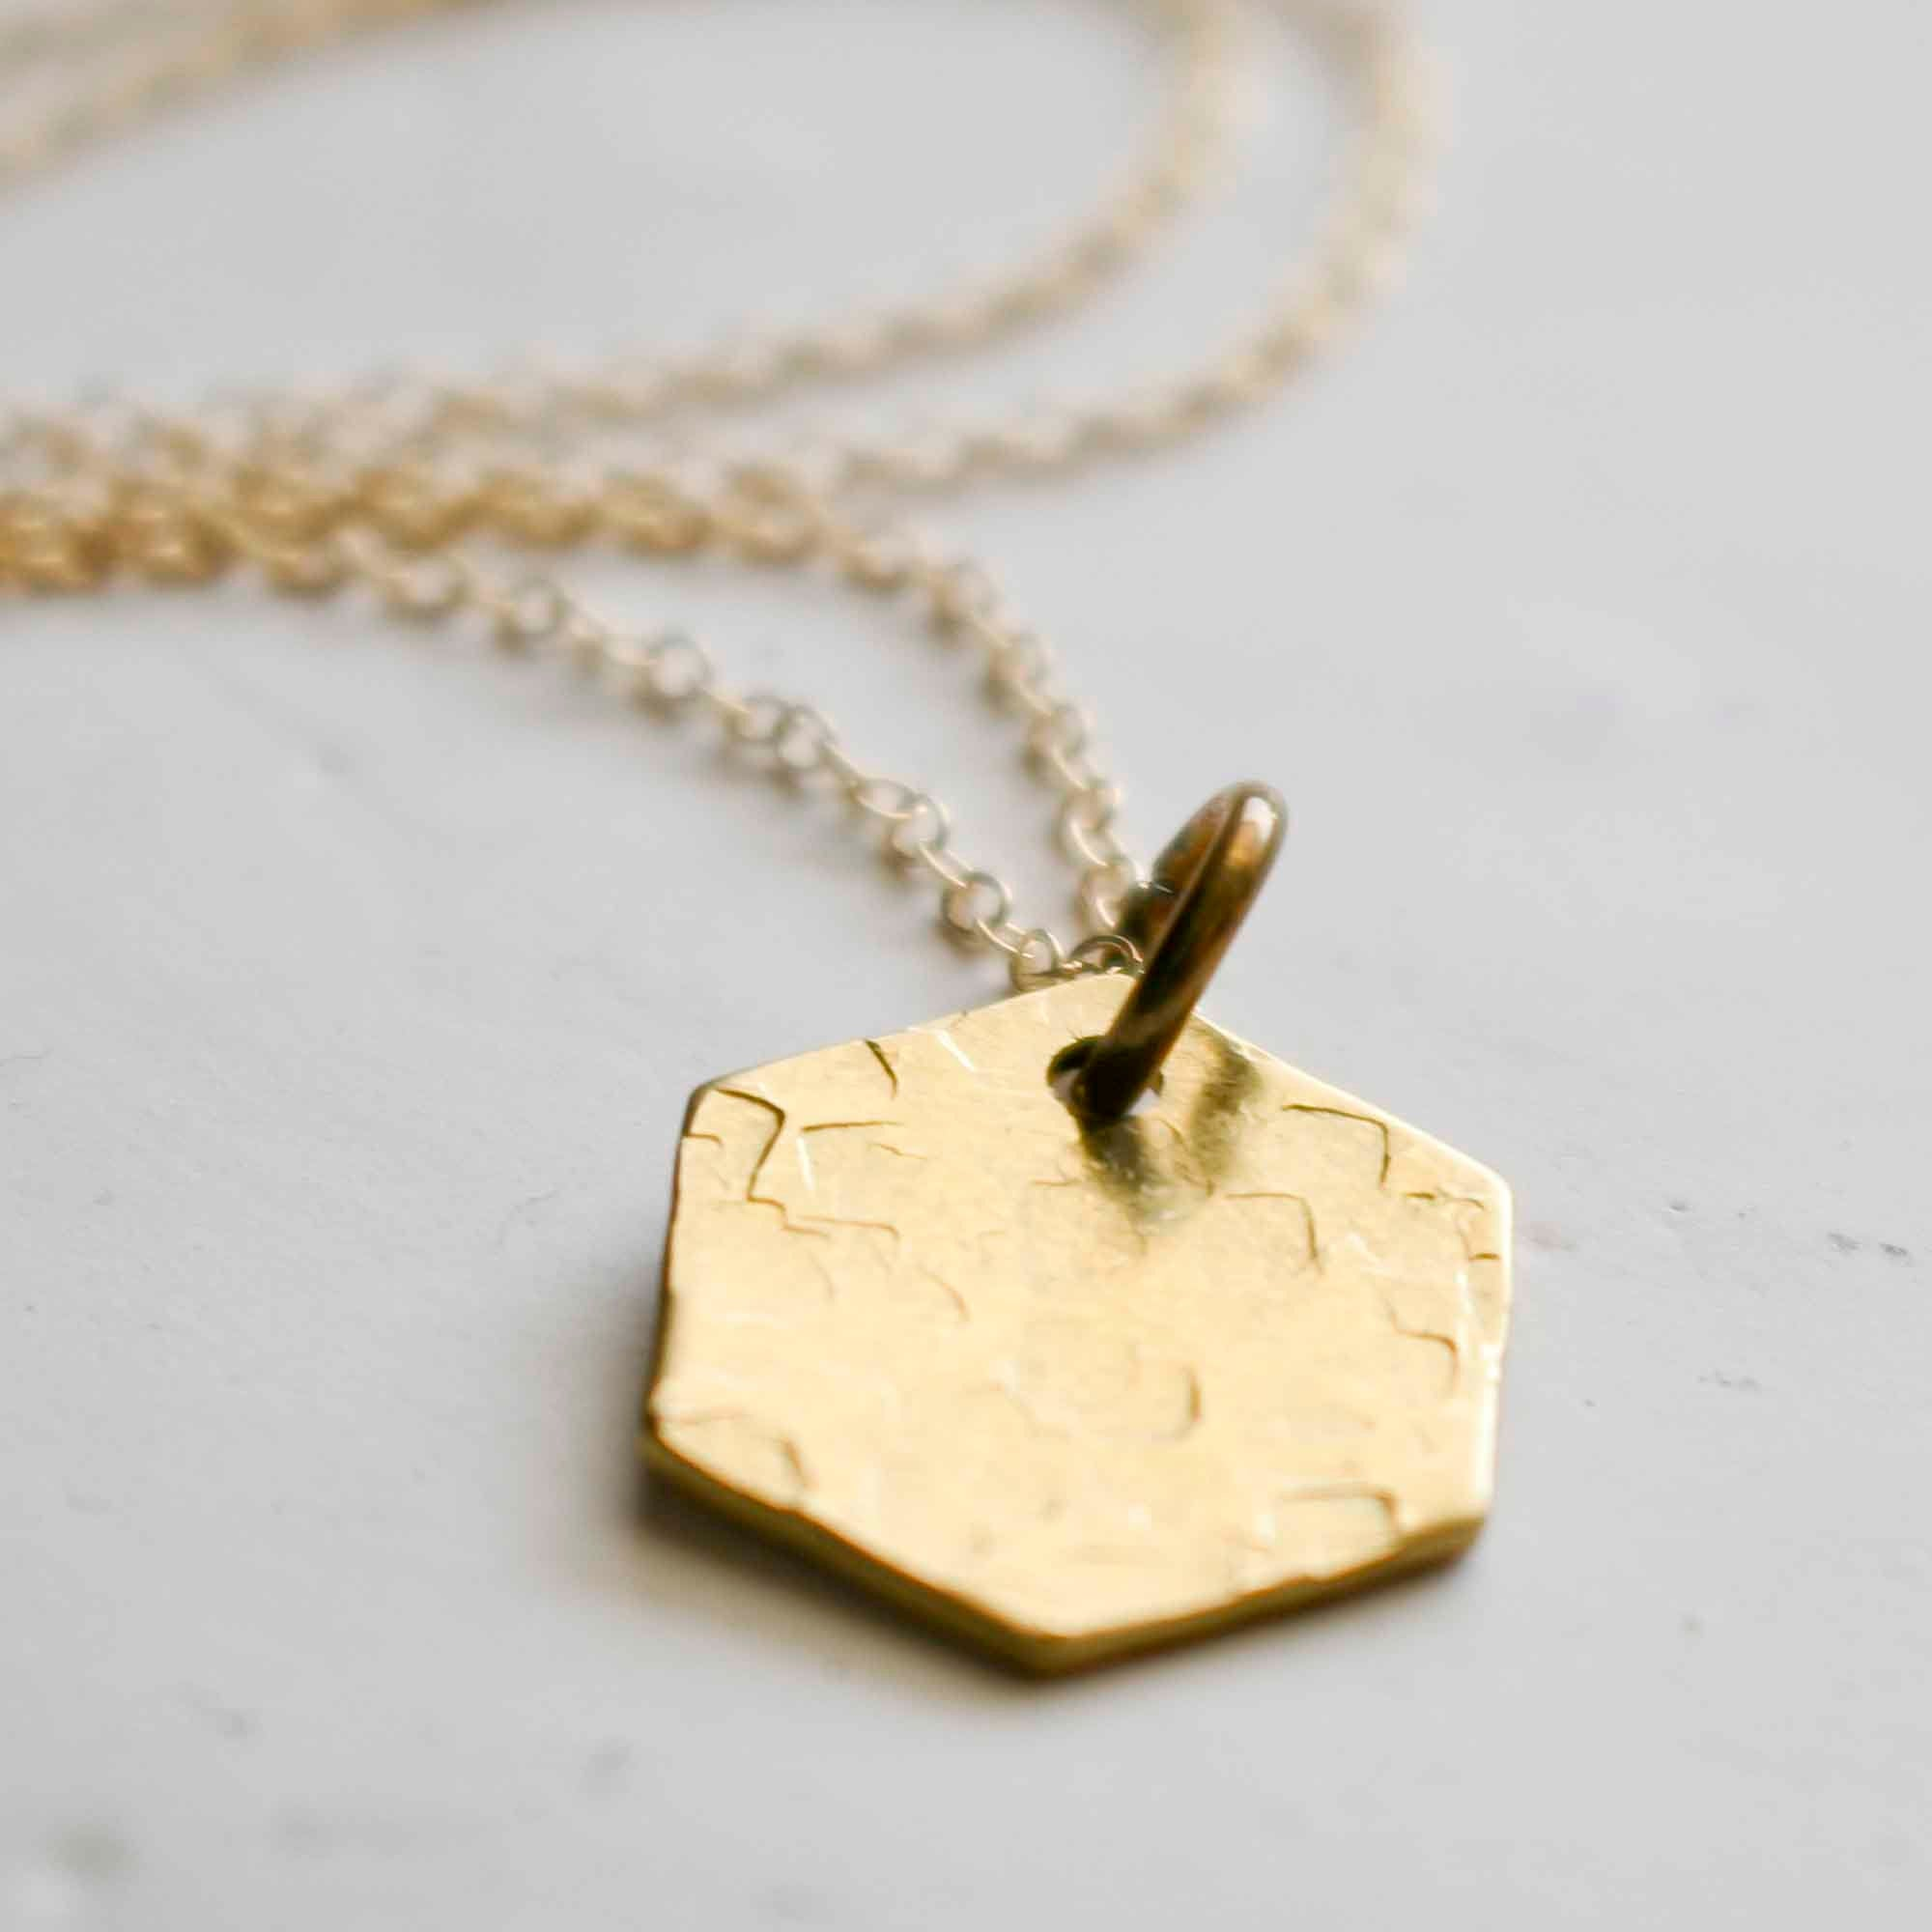 Hexagon Brass Charm, Geometry Jewelry, Shape Necklace, Six Sides, Medallion, Tag Necklace, Geometric Necklace, Disc Layering Necklace